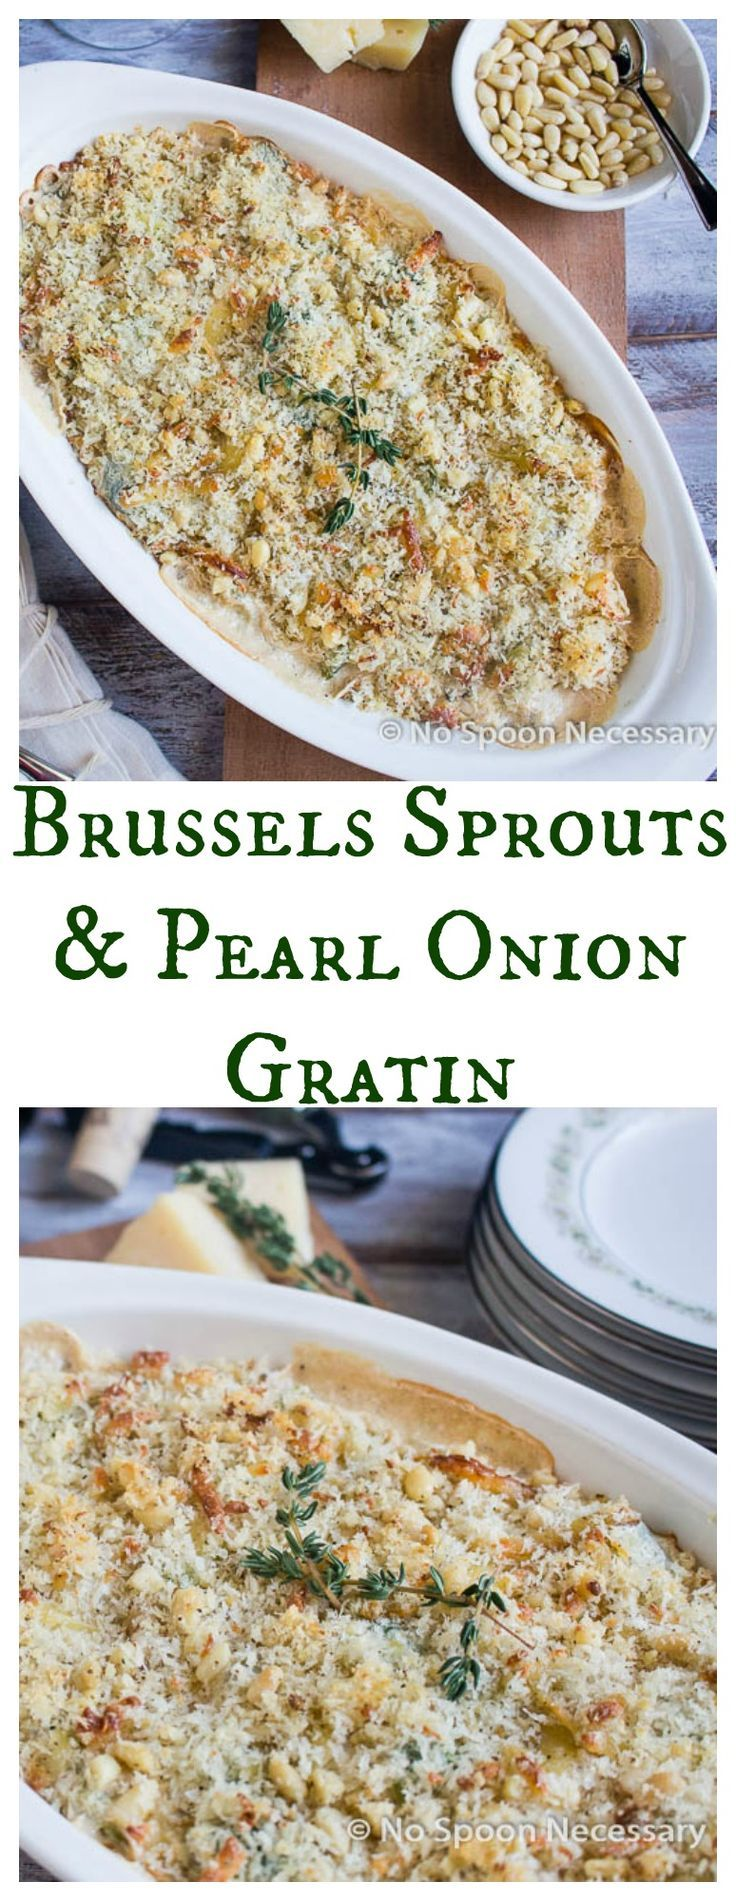 Brussels Sprouts and Pearl Onion Gratin - My Family's Favorite Thanksgiving Dish!